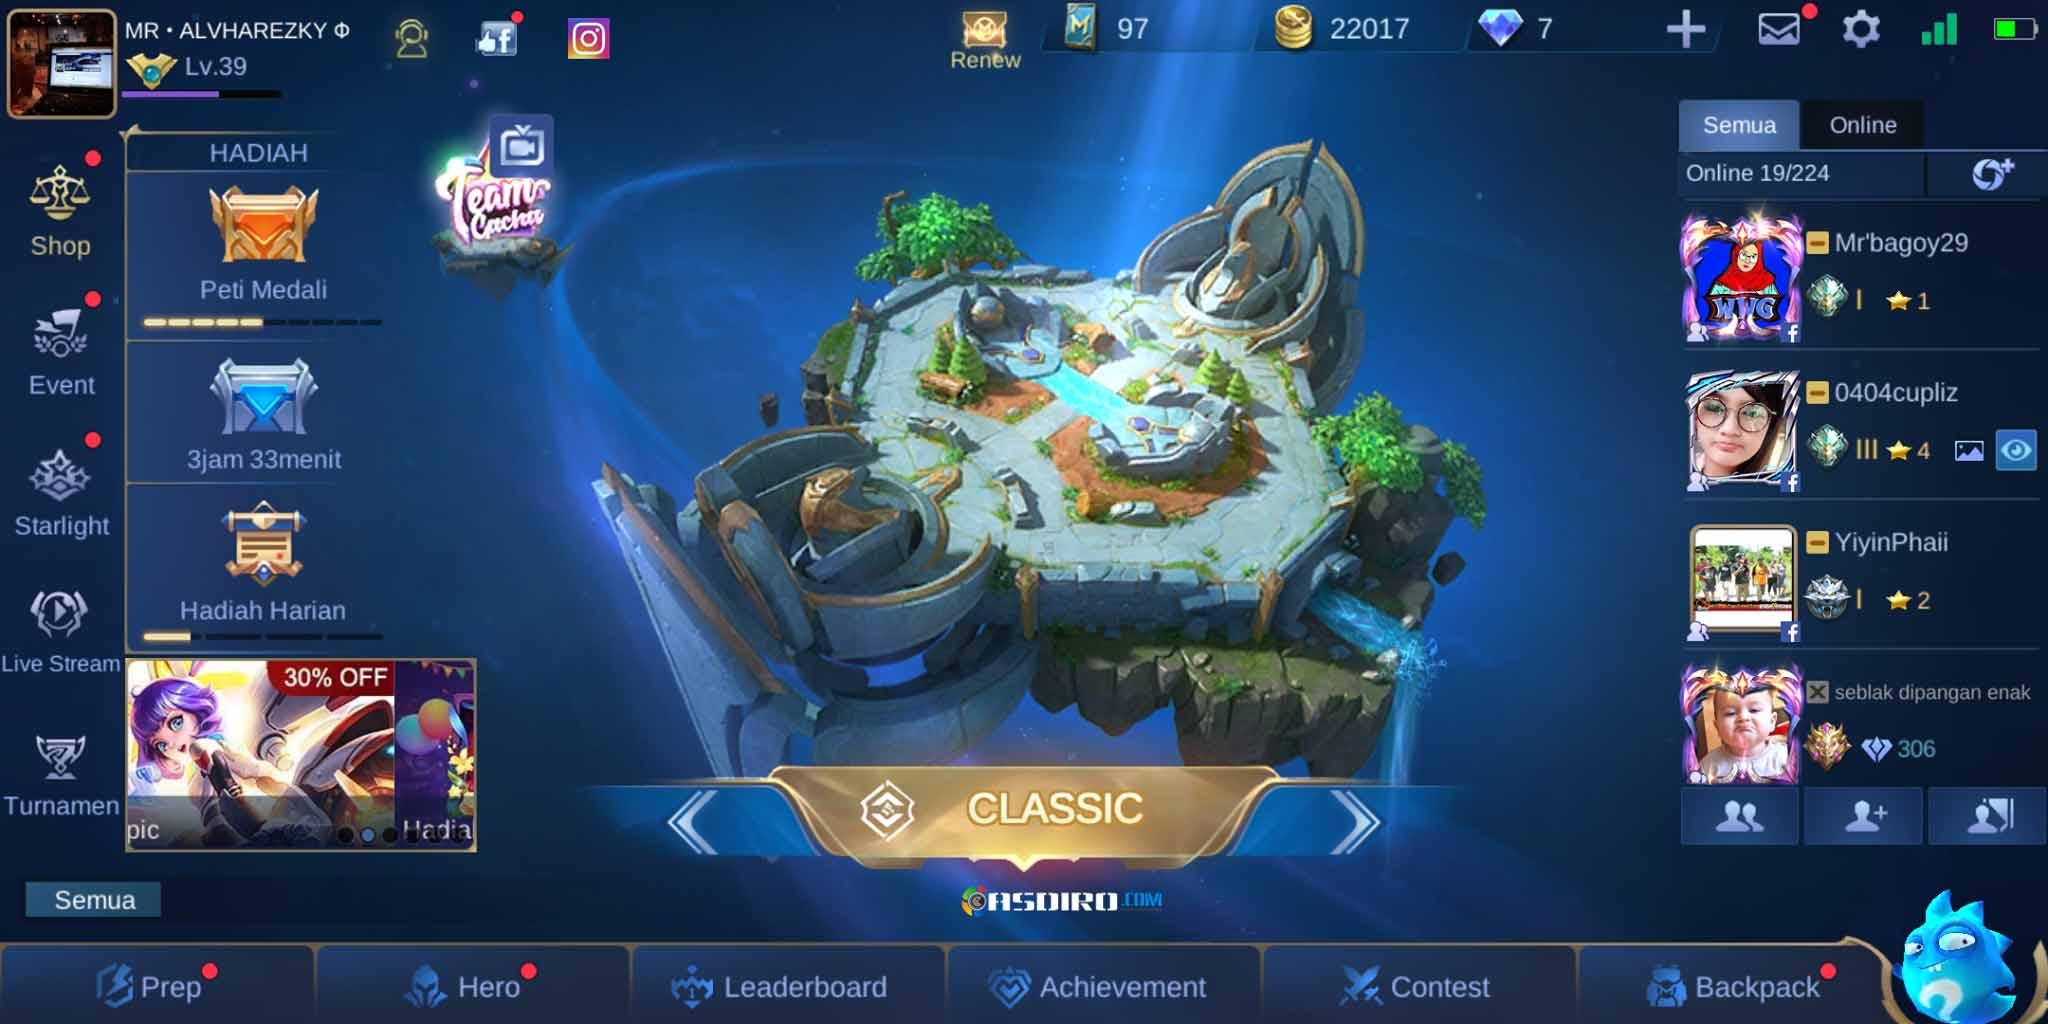 Mode Classic di Mobile Legends Apk